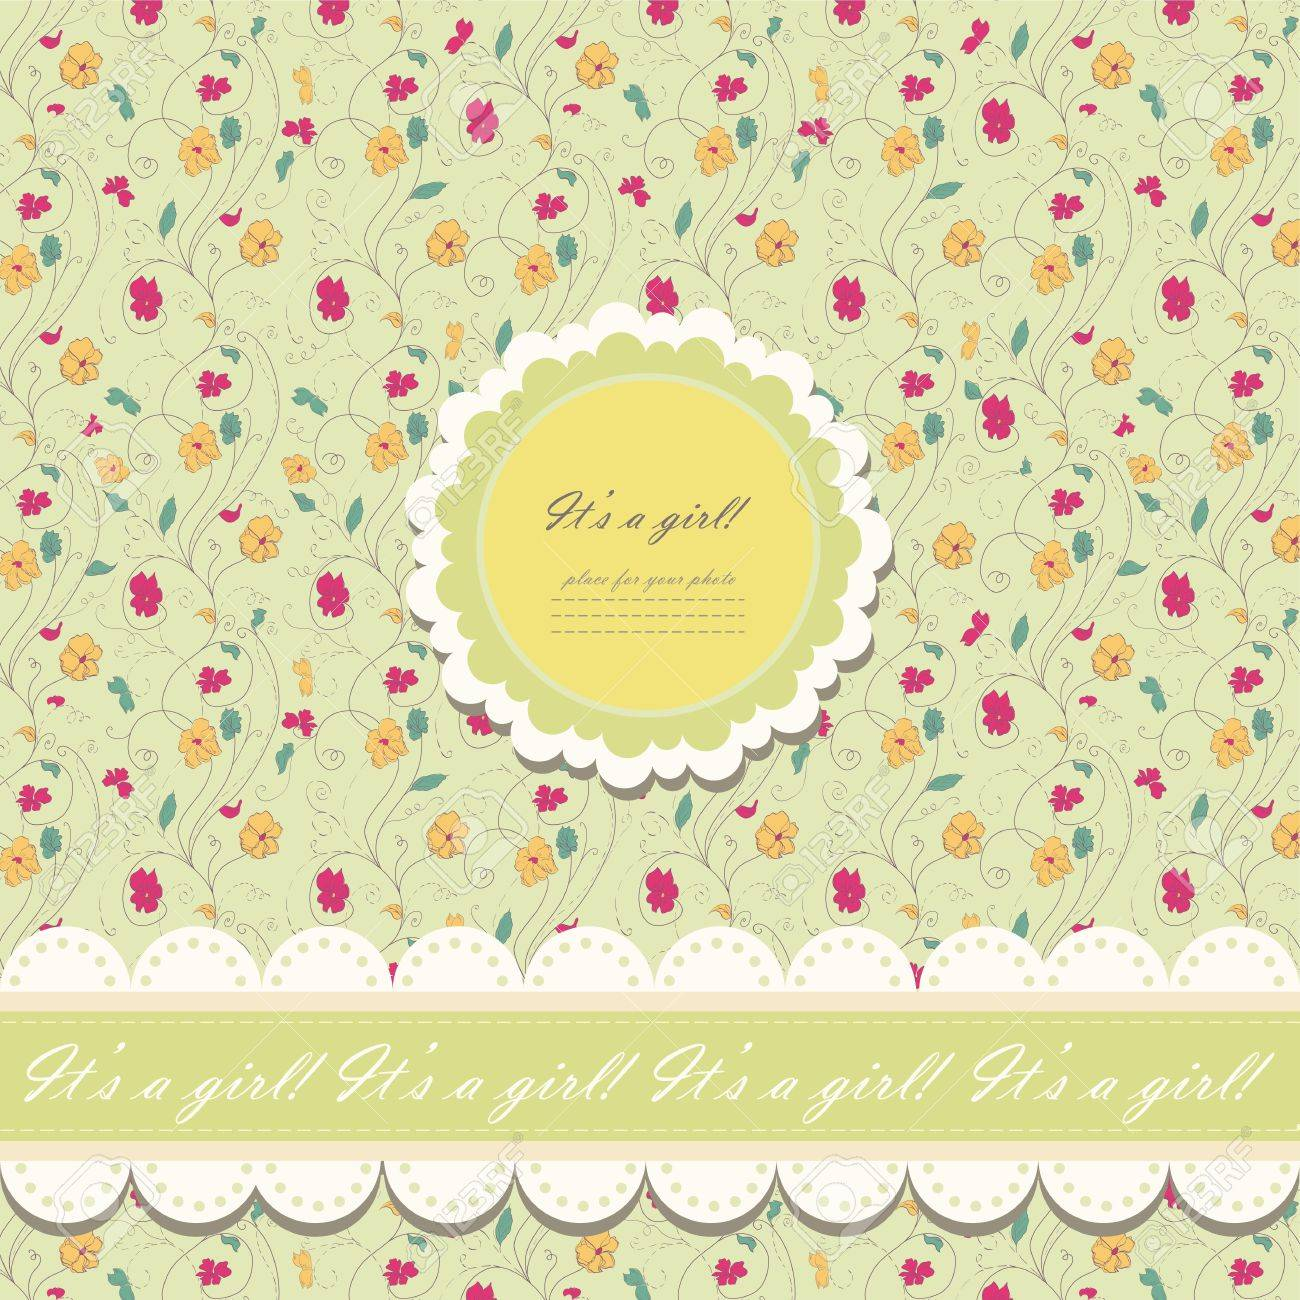 Romantic yellow scrapbooking with text for invitation greeting romantic yellow scrapbooking with text for invitation greeting happy birthday label postcard stopboris Image collections